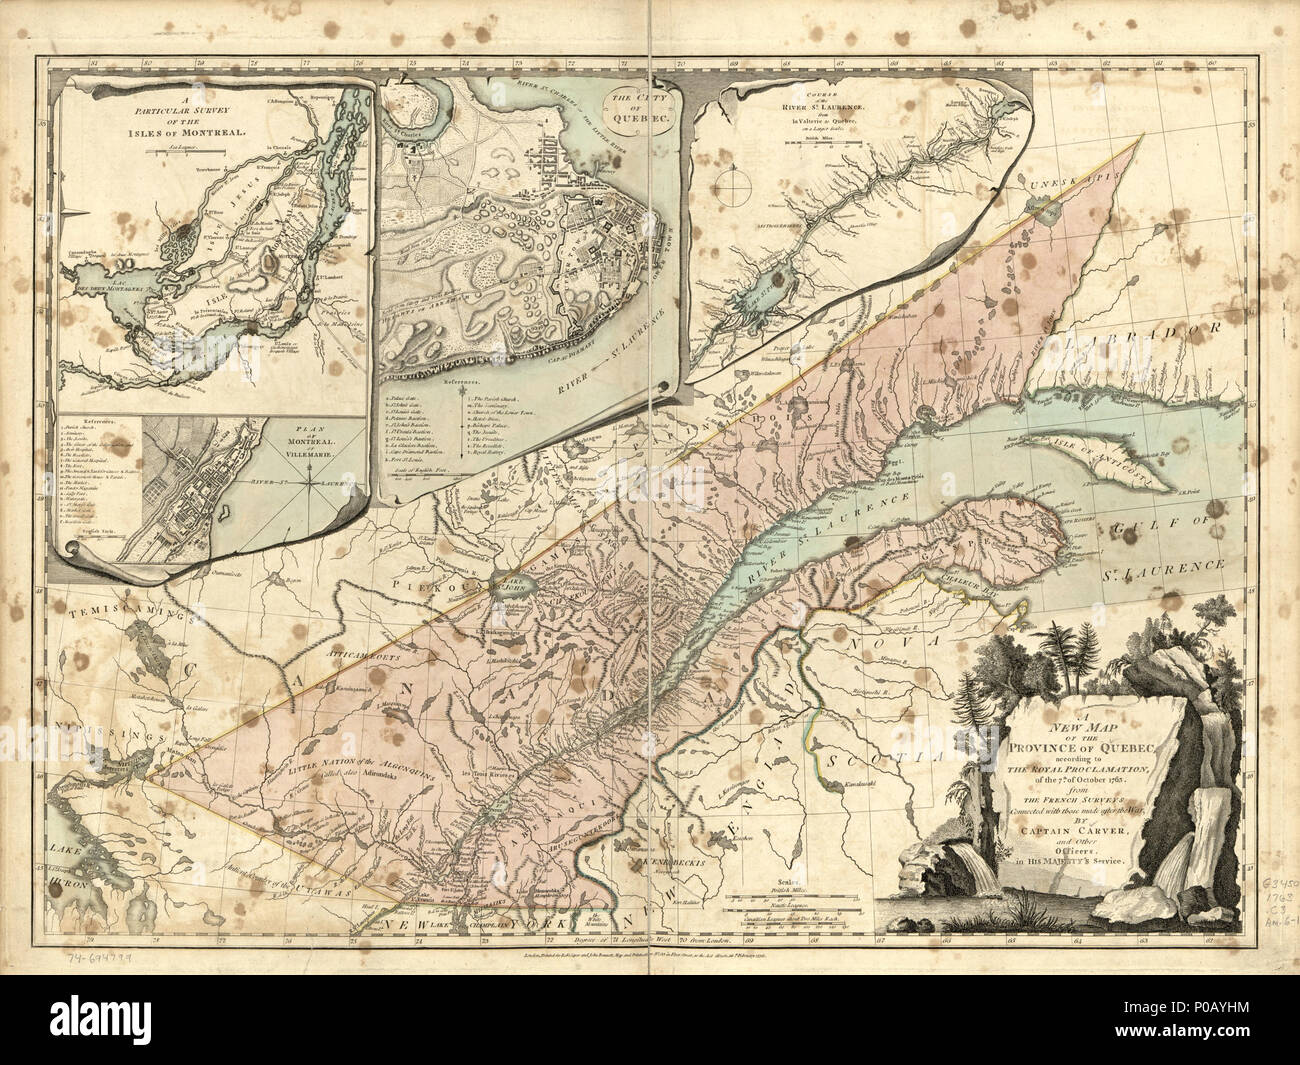 155 A new map of the Province of Quebec, according to the Royal Proclamation, of the 7th of October 1763. LOC 74694799 - Stock Image